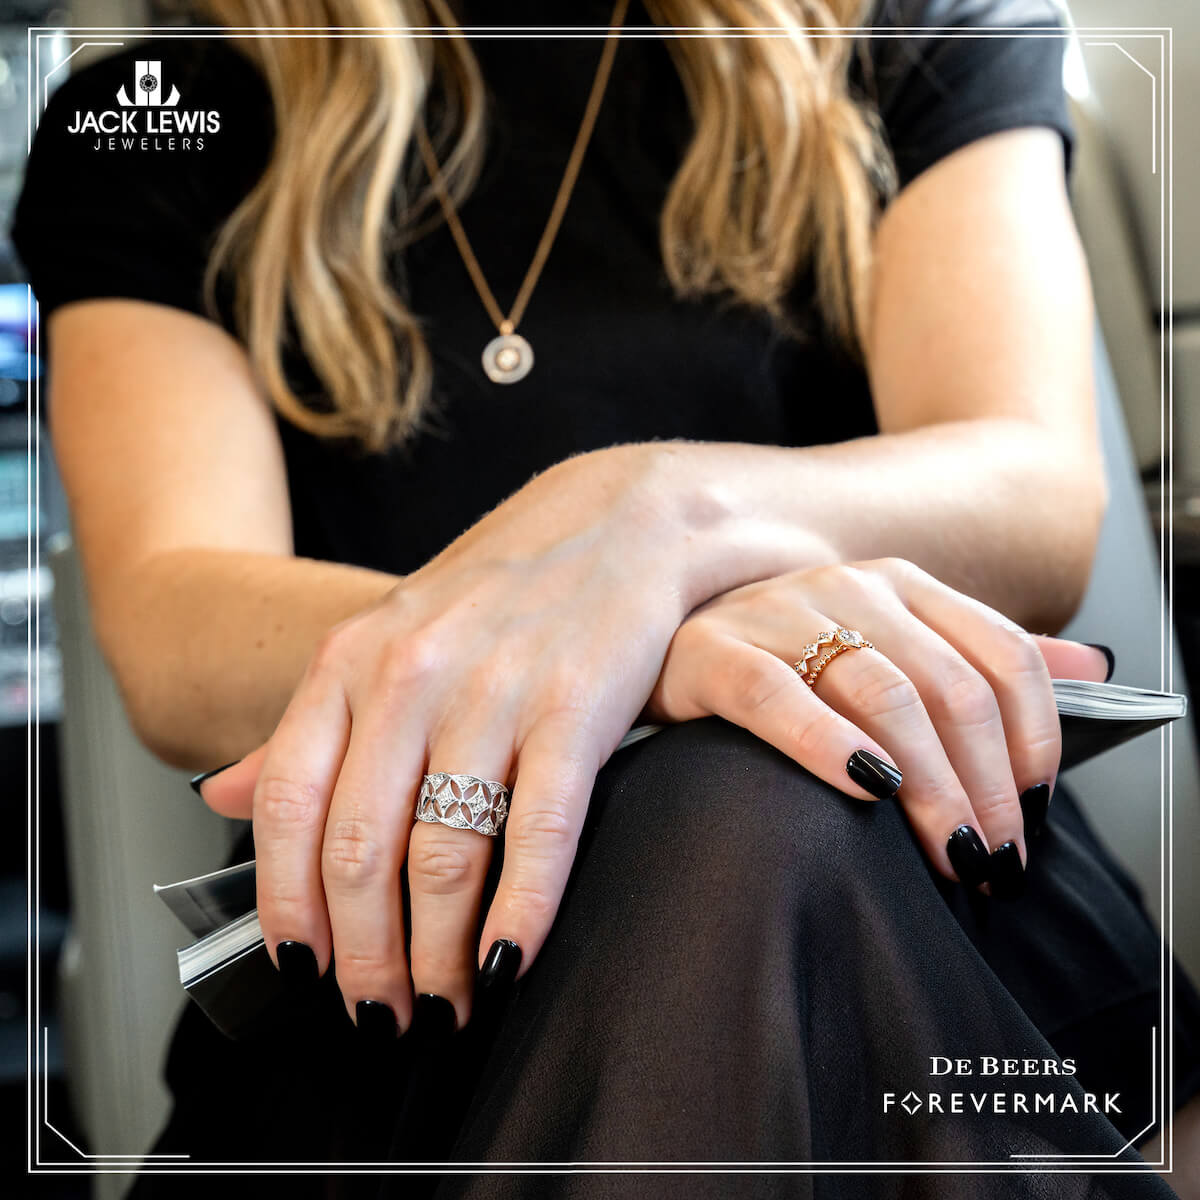 Close up of a young woman's hands with black fingernails and wearing Debeers Forevermark Rings in white gold and yellow gold